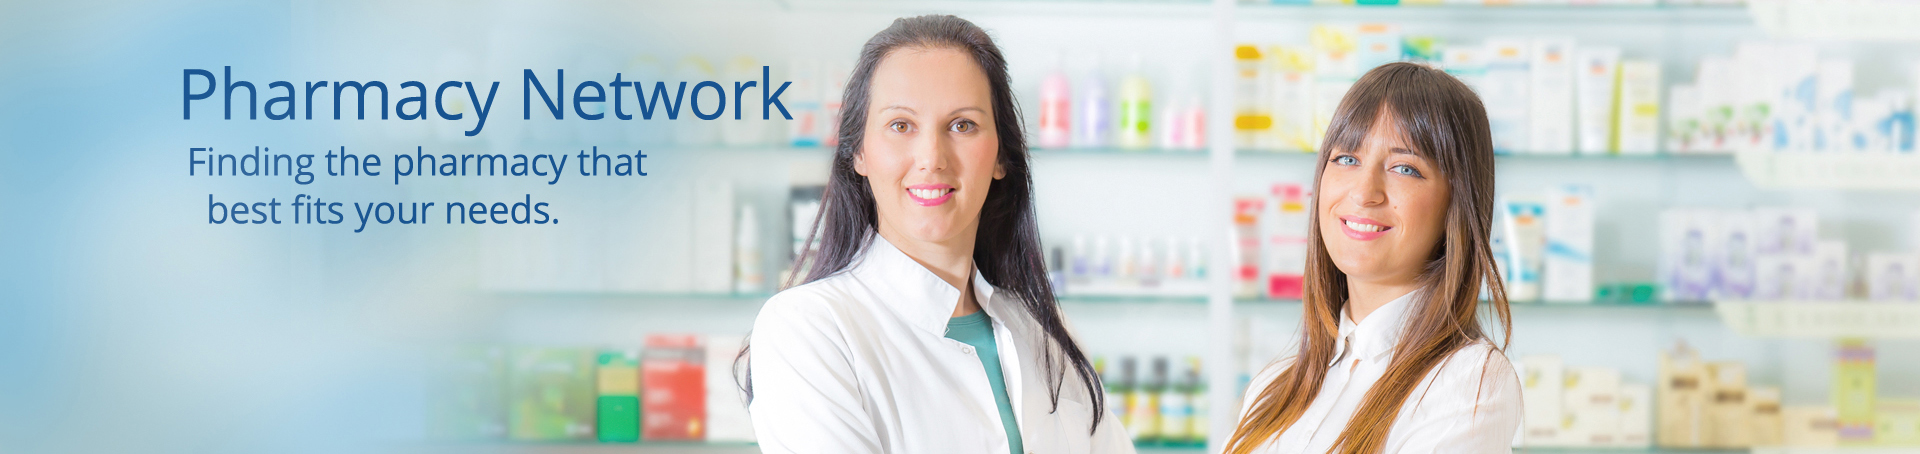 pharmacy network